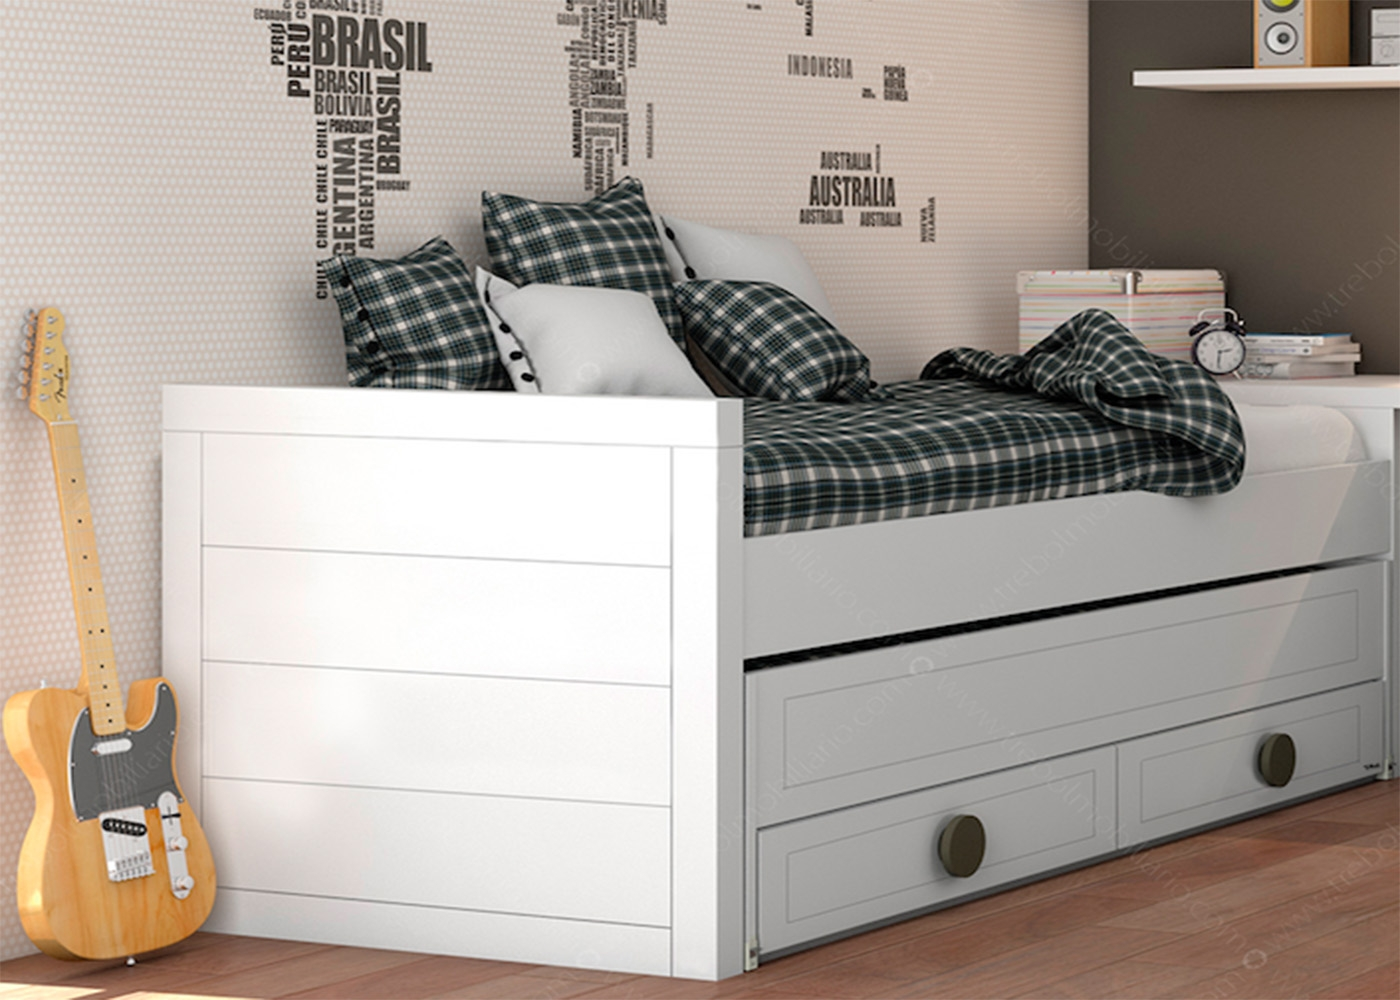 lit superpos avec tiroir lit et 2 couchages de qualit chez ksl living. Black Bedroom Furniture Sets. Home Design Ideas